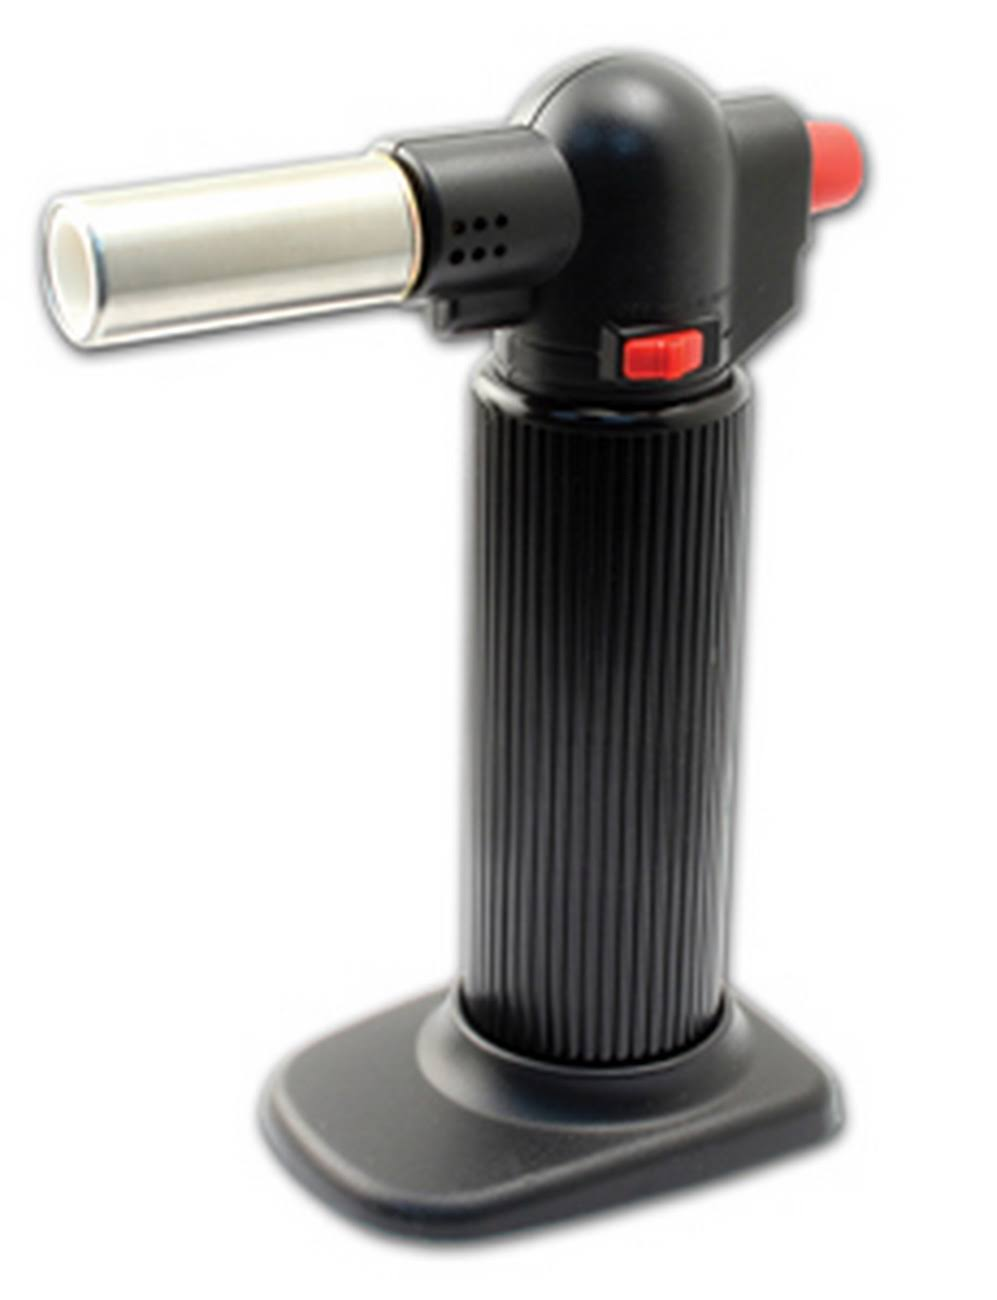 Blazer Products Turbo Flame Big Buddy Torch - Black